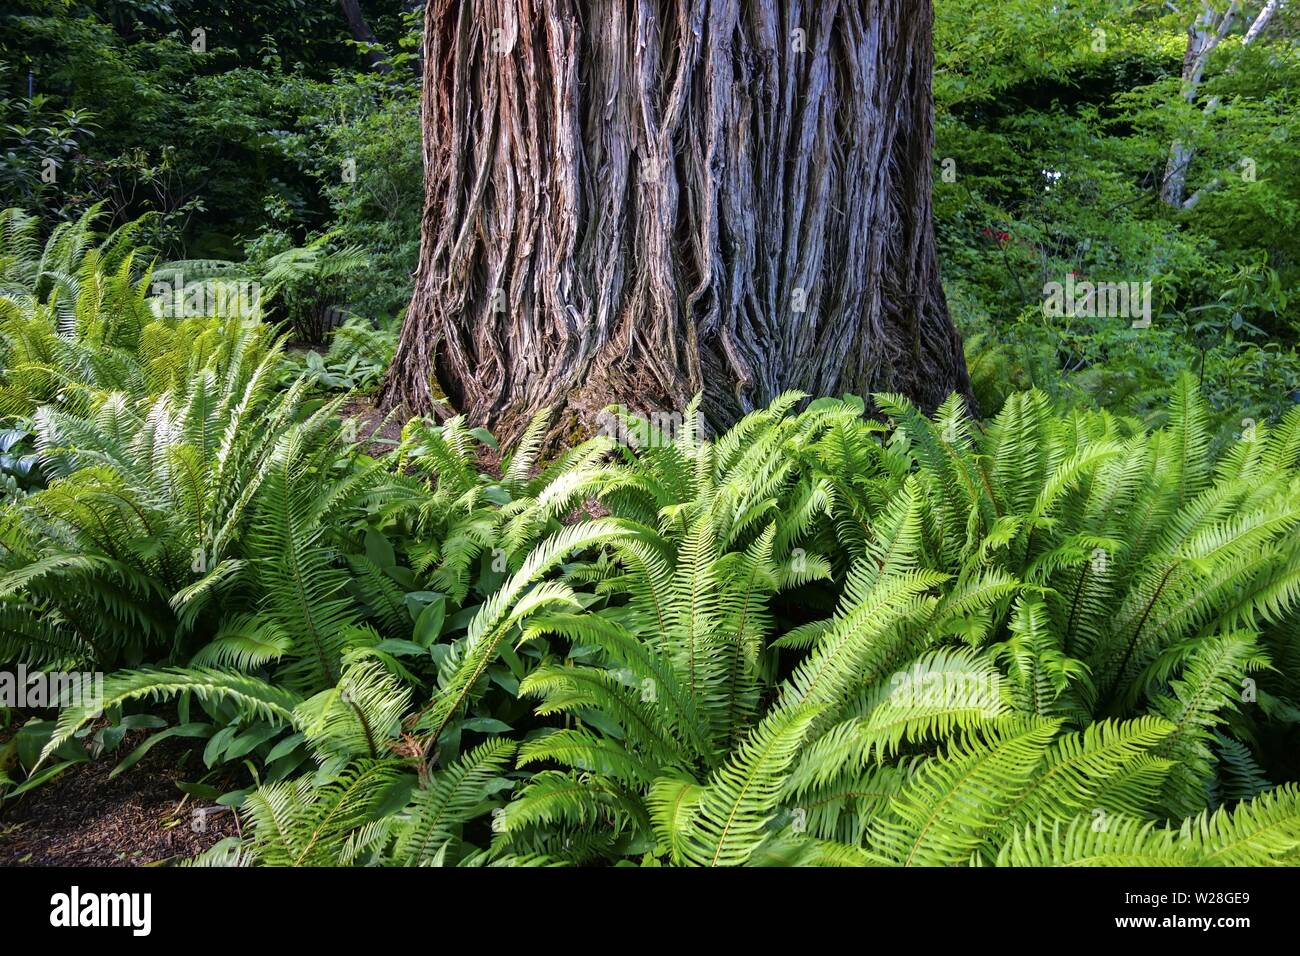 Giant Red Cedar Tree Trunk and Green Fern Plants in Butchart Gardens, Vancouver Island Rainforest Pacific Northwest British Columbia Canada Stock Photo